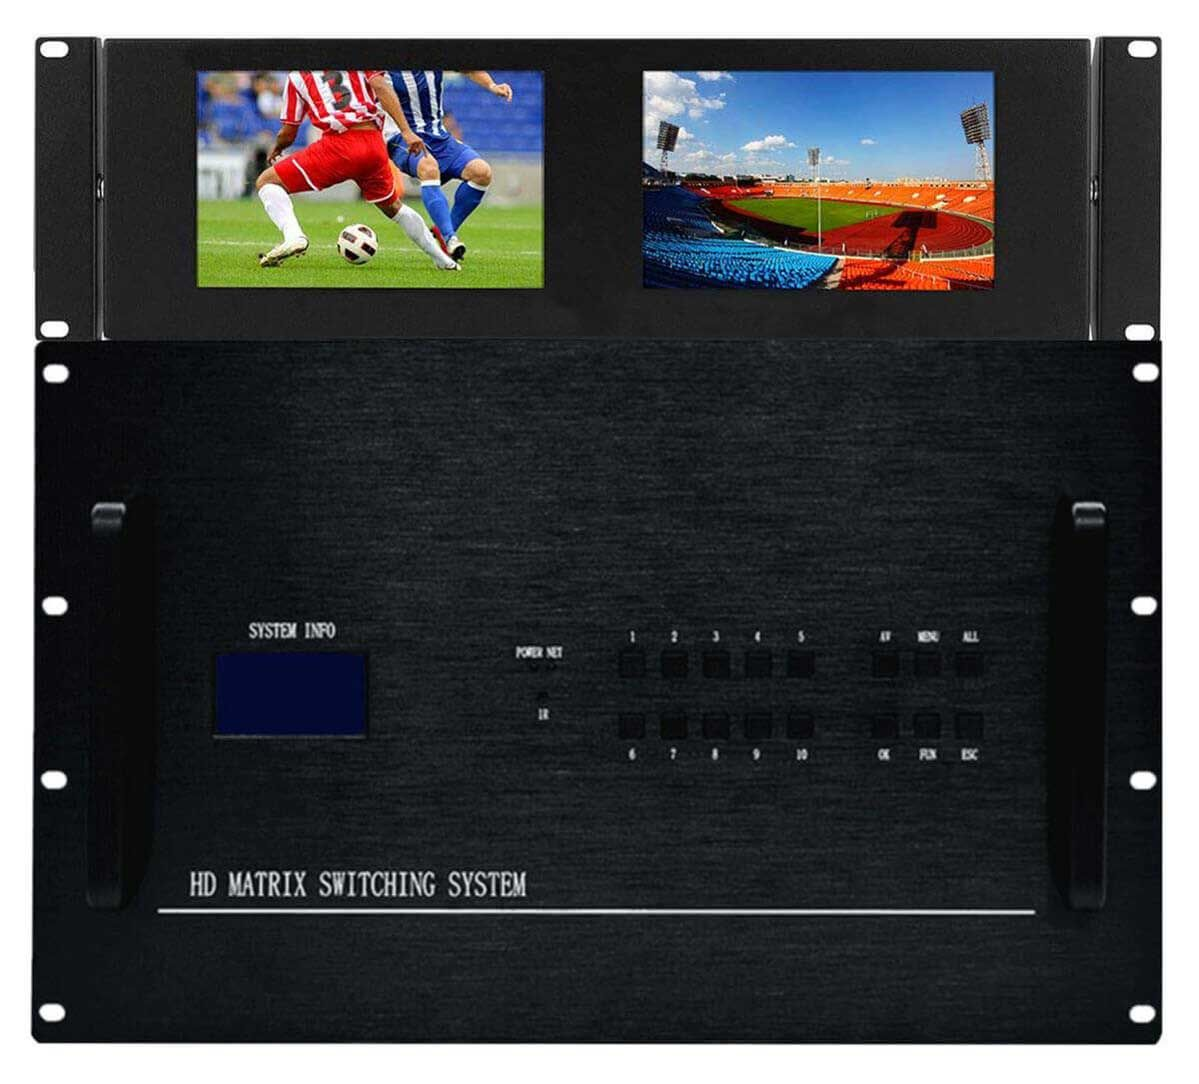 4K 20x4 HDMI Matrix HDBaseT Switch with 4-CAT5 Extenders